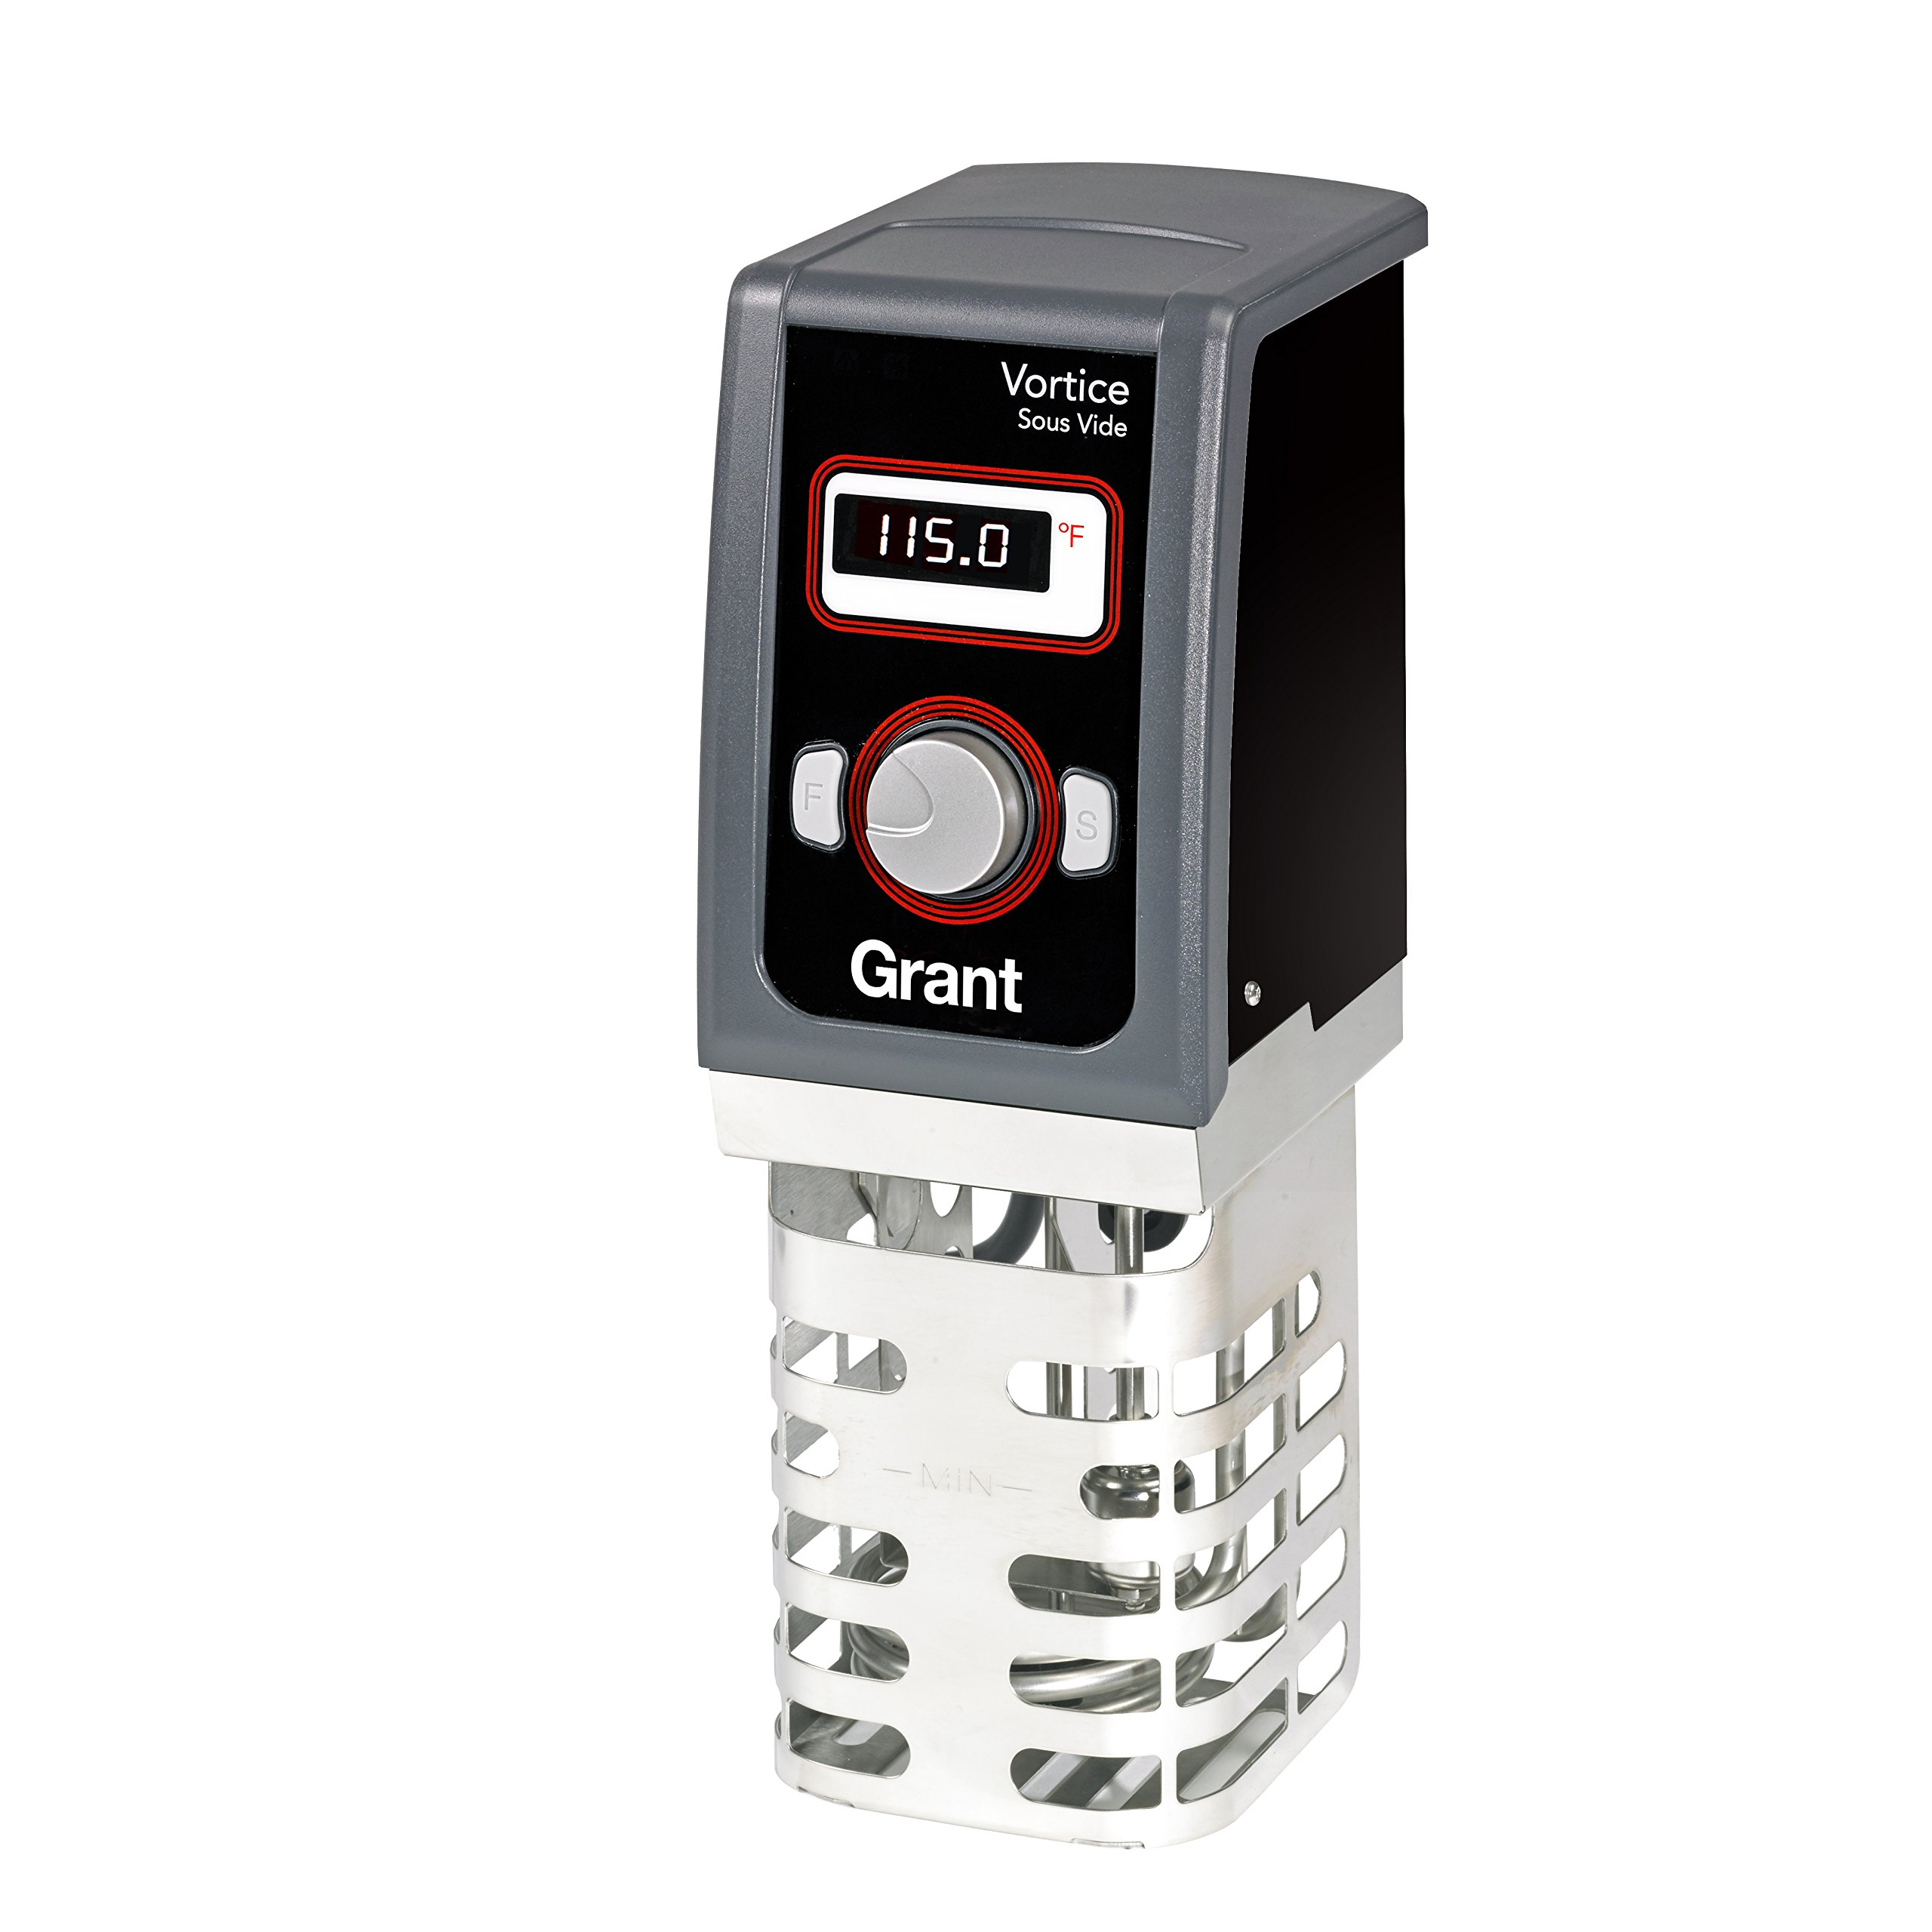 Creative Cuisine by Grant Vortice Sous Vide Immersion Circulator, Black, One Size